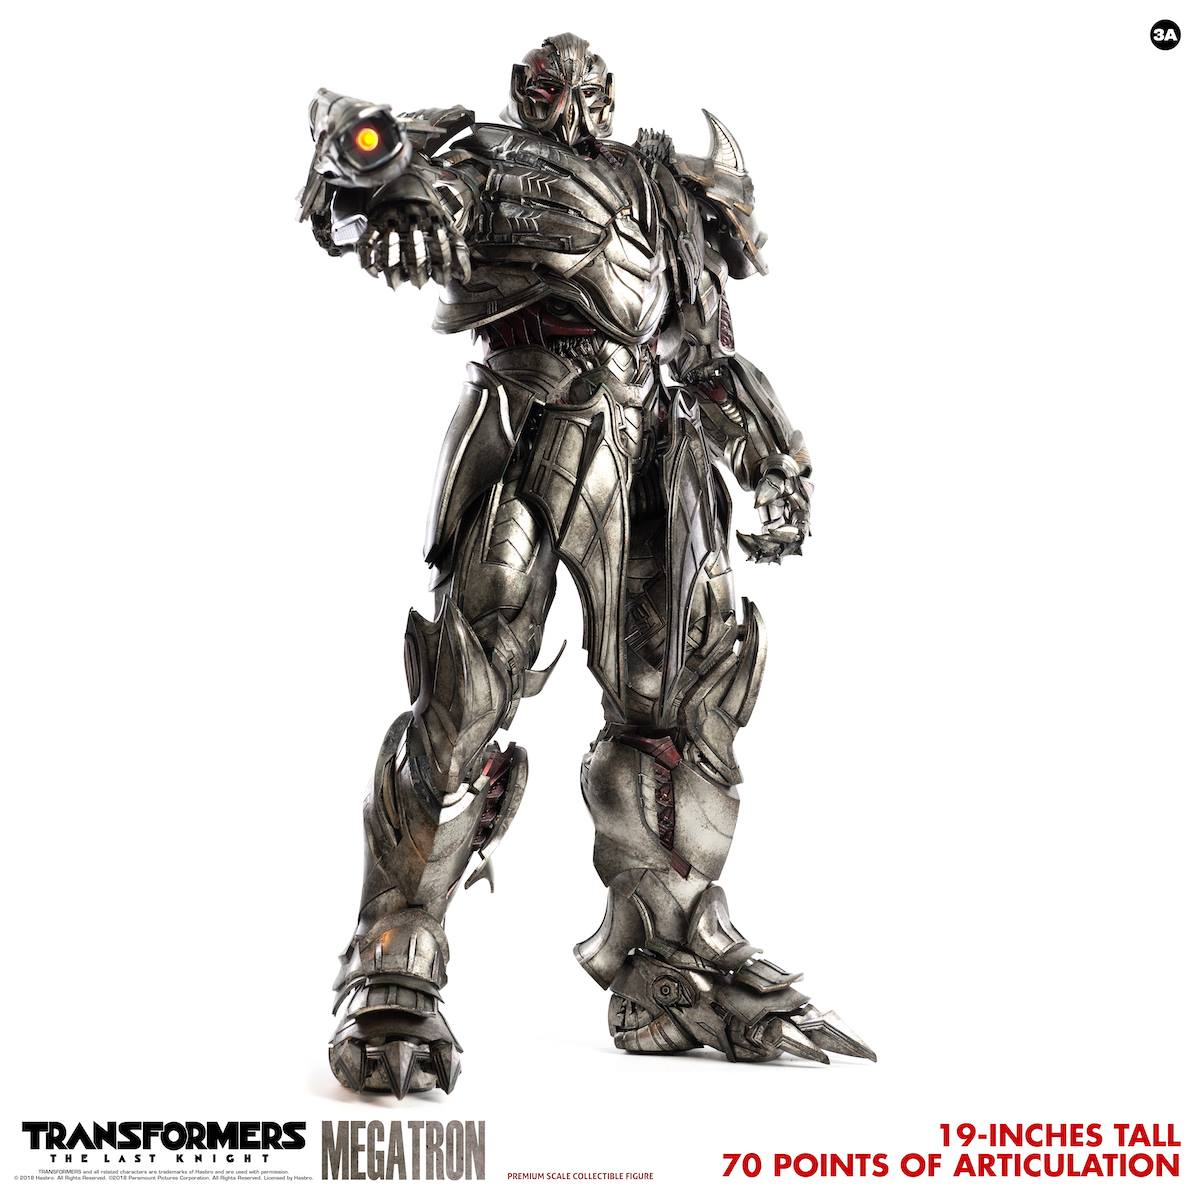 ThreeA - Premium Scale Collectible Series - Transformers: The Last Knight - Megatron (Standard)